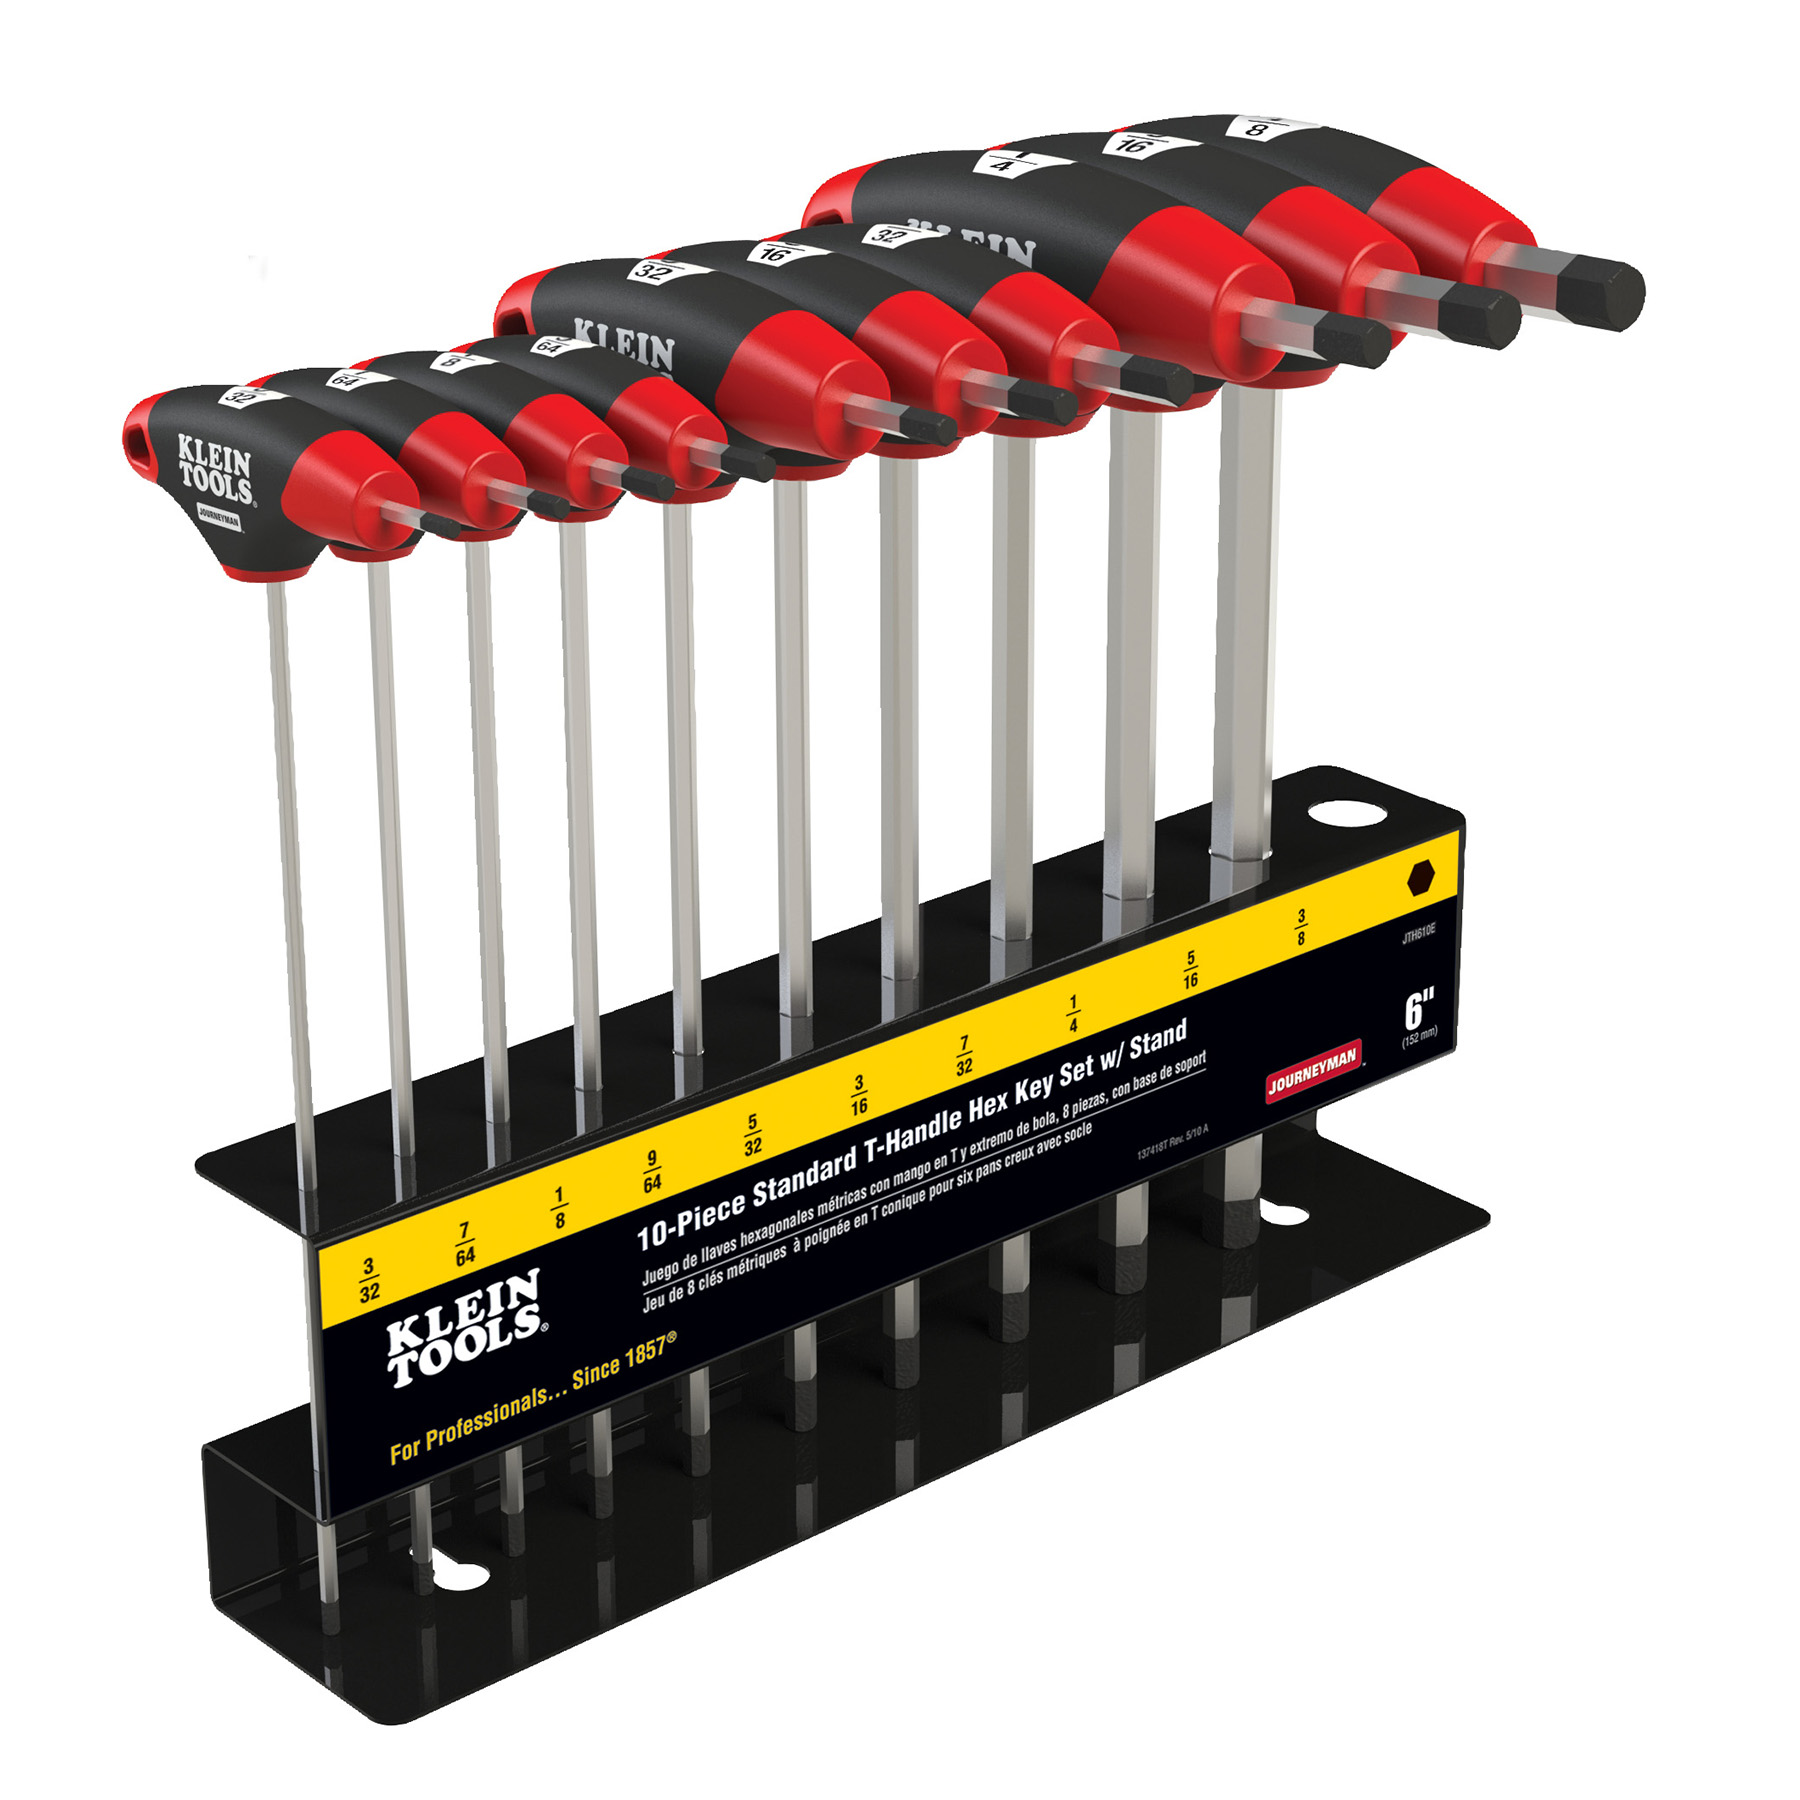 KLEIN 10 PC SAE JOURNEYMAN T-HANDLE SET WITH STAND